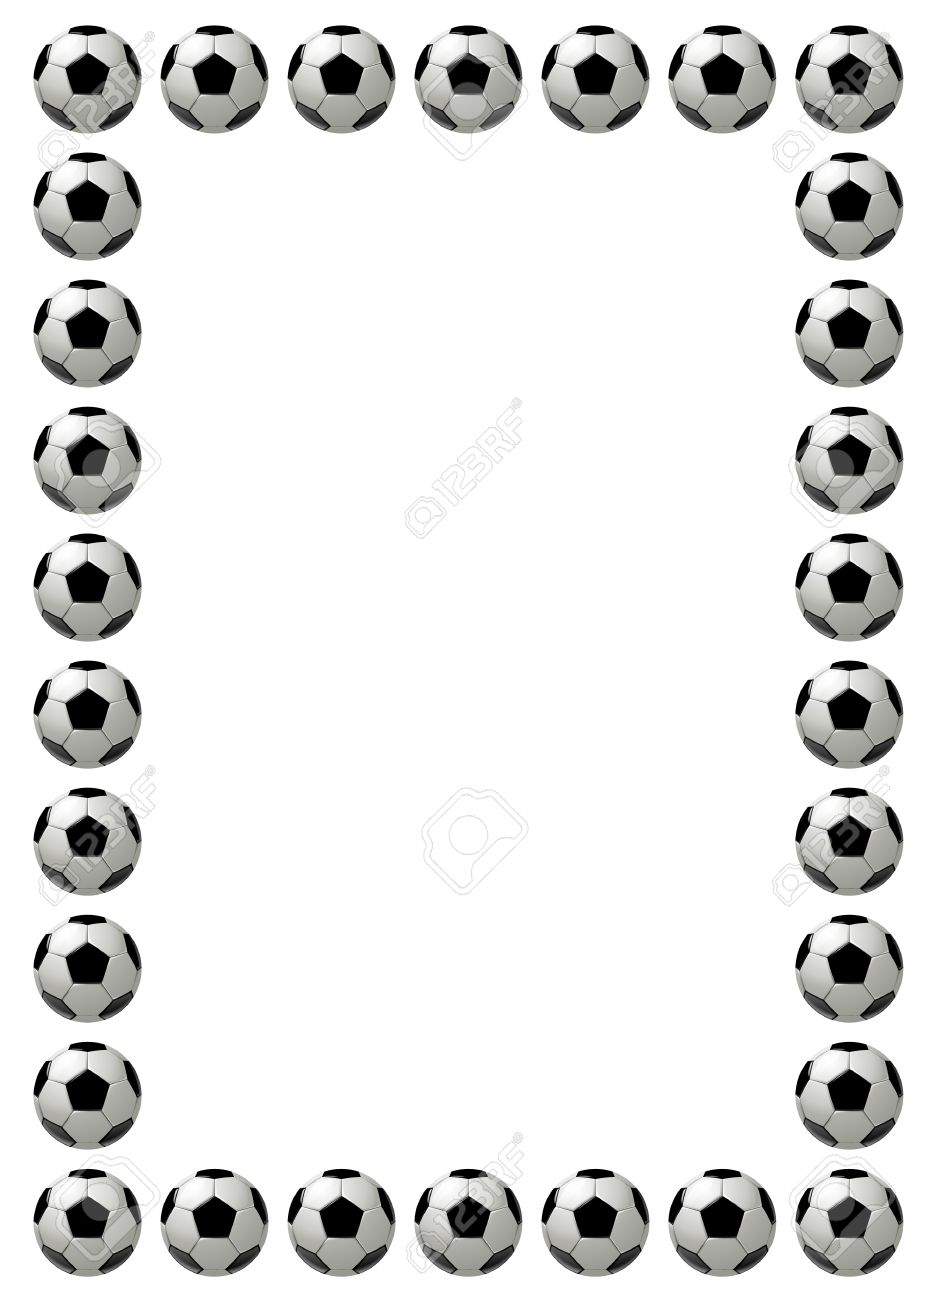 Soccer Ball Or Football Frame With Place For Text, White Background ...